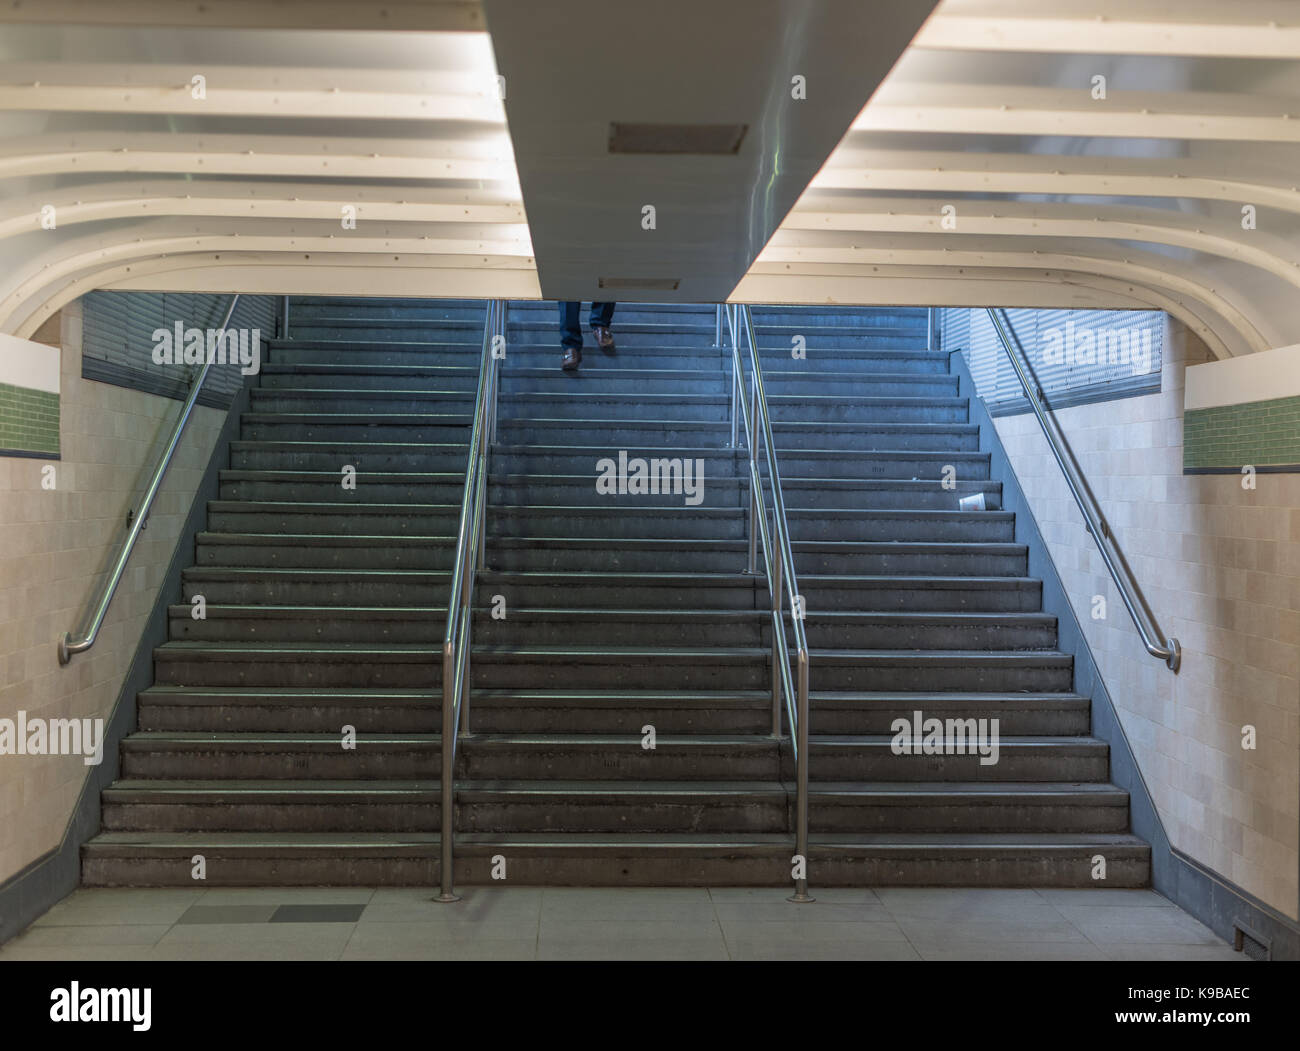 A pair of shoes appears at the top of a stairwell leading to the PATH Tubes in Hoboken - Stock Image